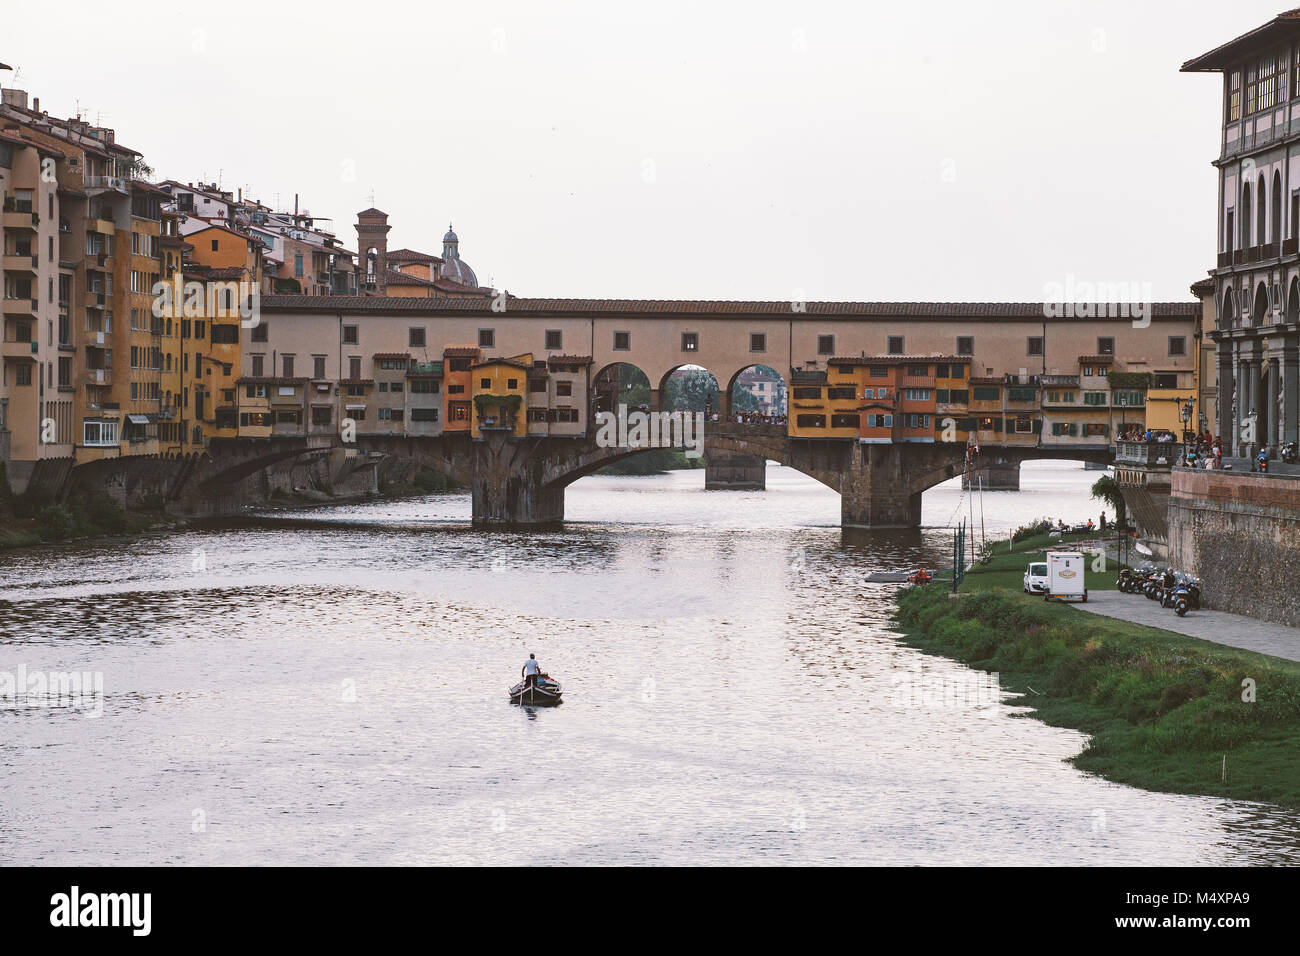 italy, florence, July 18, 2013 Bridge Ponte Vecchio in Florence, Italy Old bridge over the Arno river - Stock Image